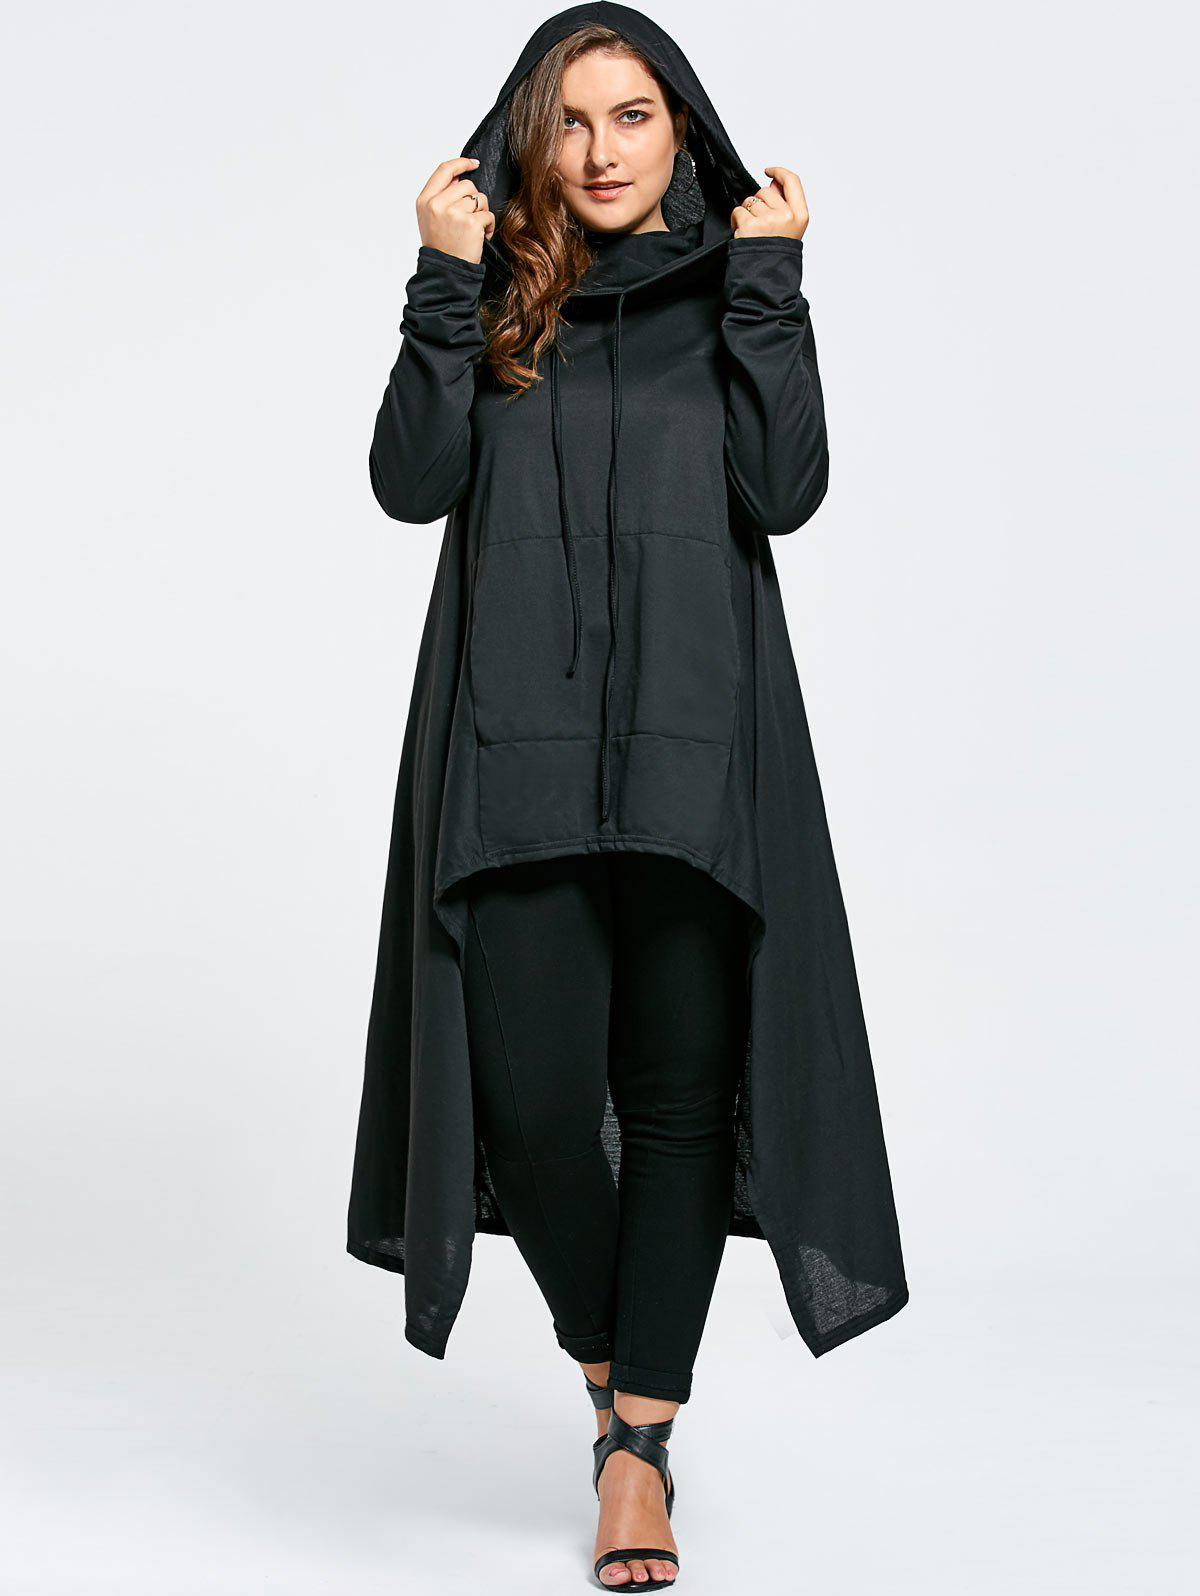 Plus Size Maxi Asymmetric Funnel Collar HoodieWOMEN<br><br>Size: 4XL; Color: BLACK; Material: Cotton Blend,Polyester; Shirt Length: X-Long; Sleeve Length: Full; Style: Fashion; Pattern Style: Solid; Season: Fall,Winter; Weight: 0.5800kg; Package Contents: 1 x Hoodie;